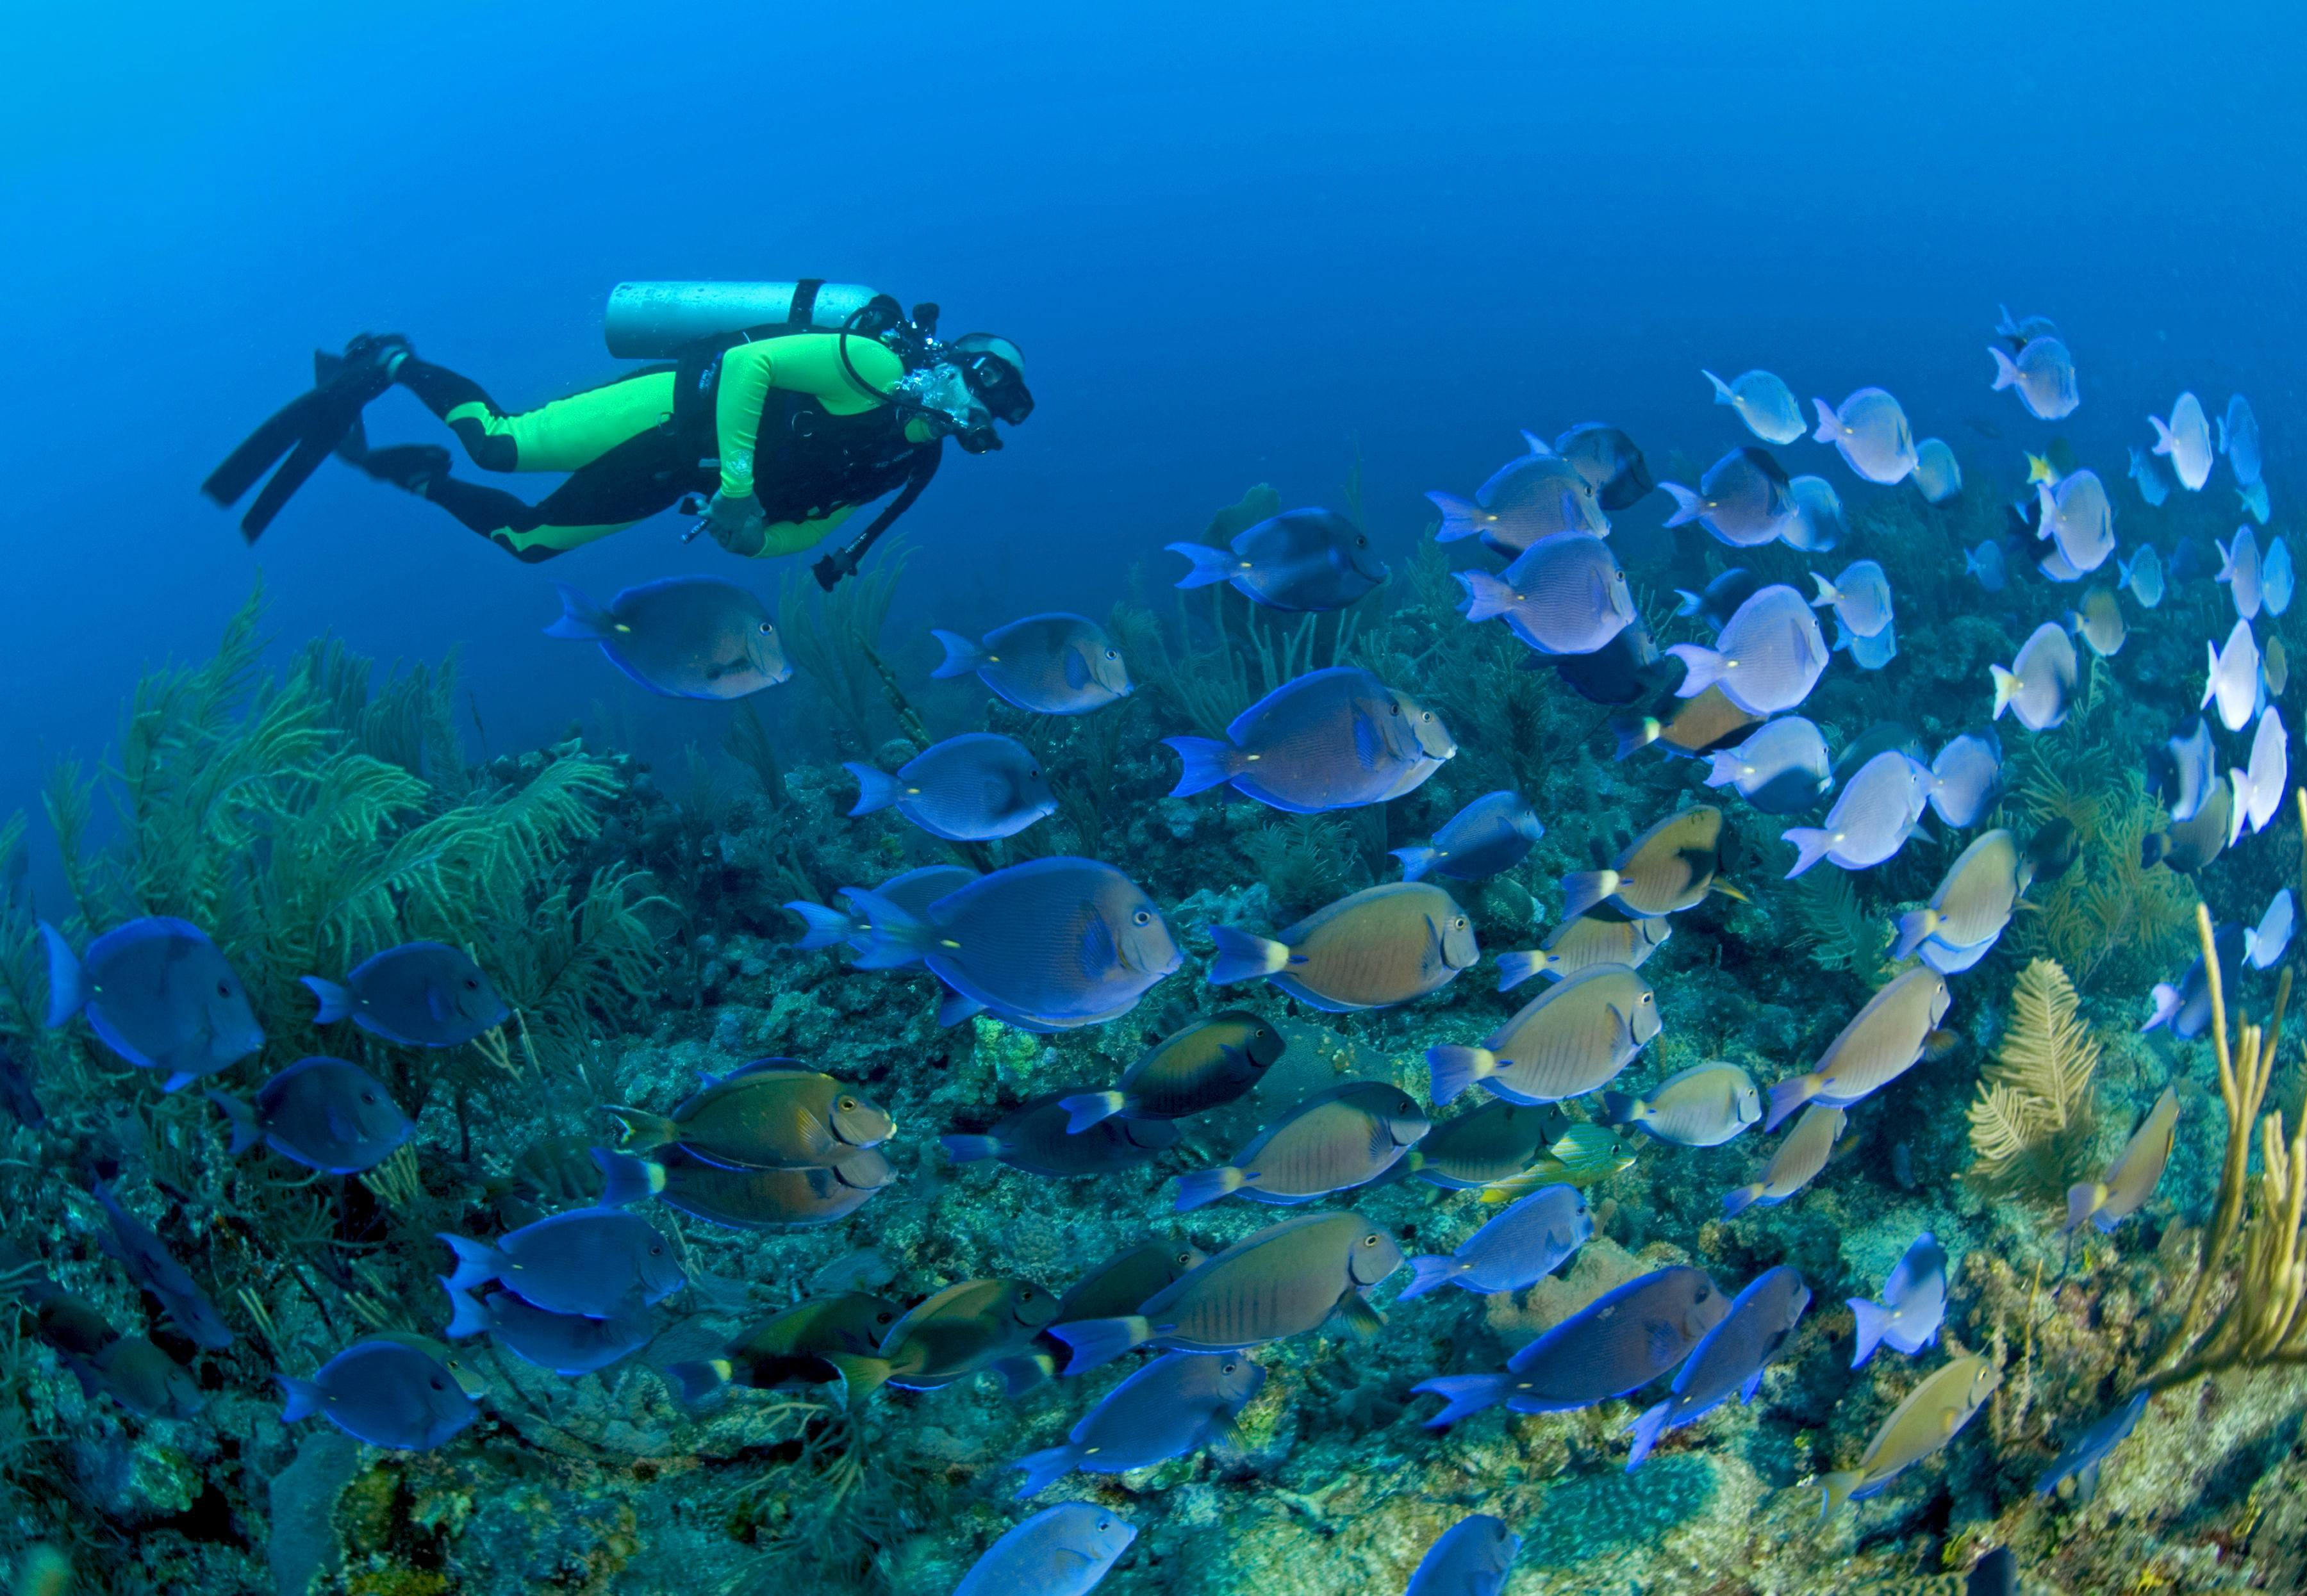 Marco Martin, owner of Dreamtime Dive Resort, swims briskly with a huge school of blue tangs off a reef called Jardines (Gardens), Mahamual, Costa Maya, Yucutan Peninsula, Mexico.